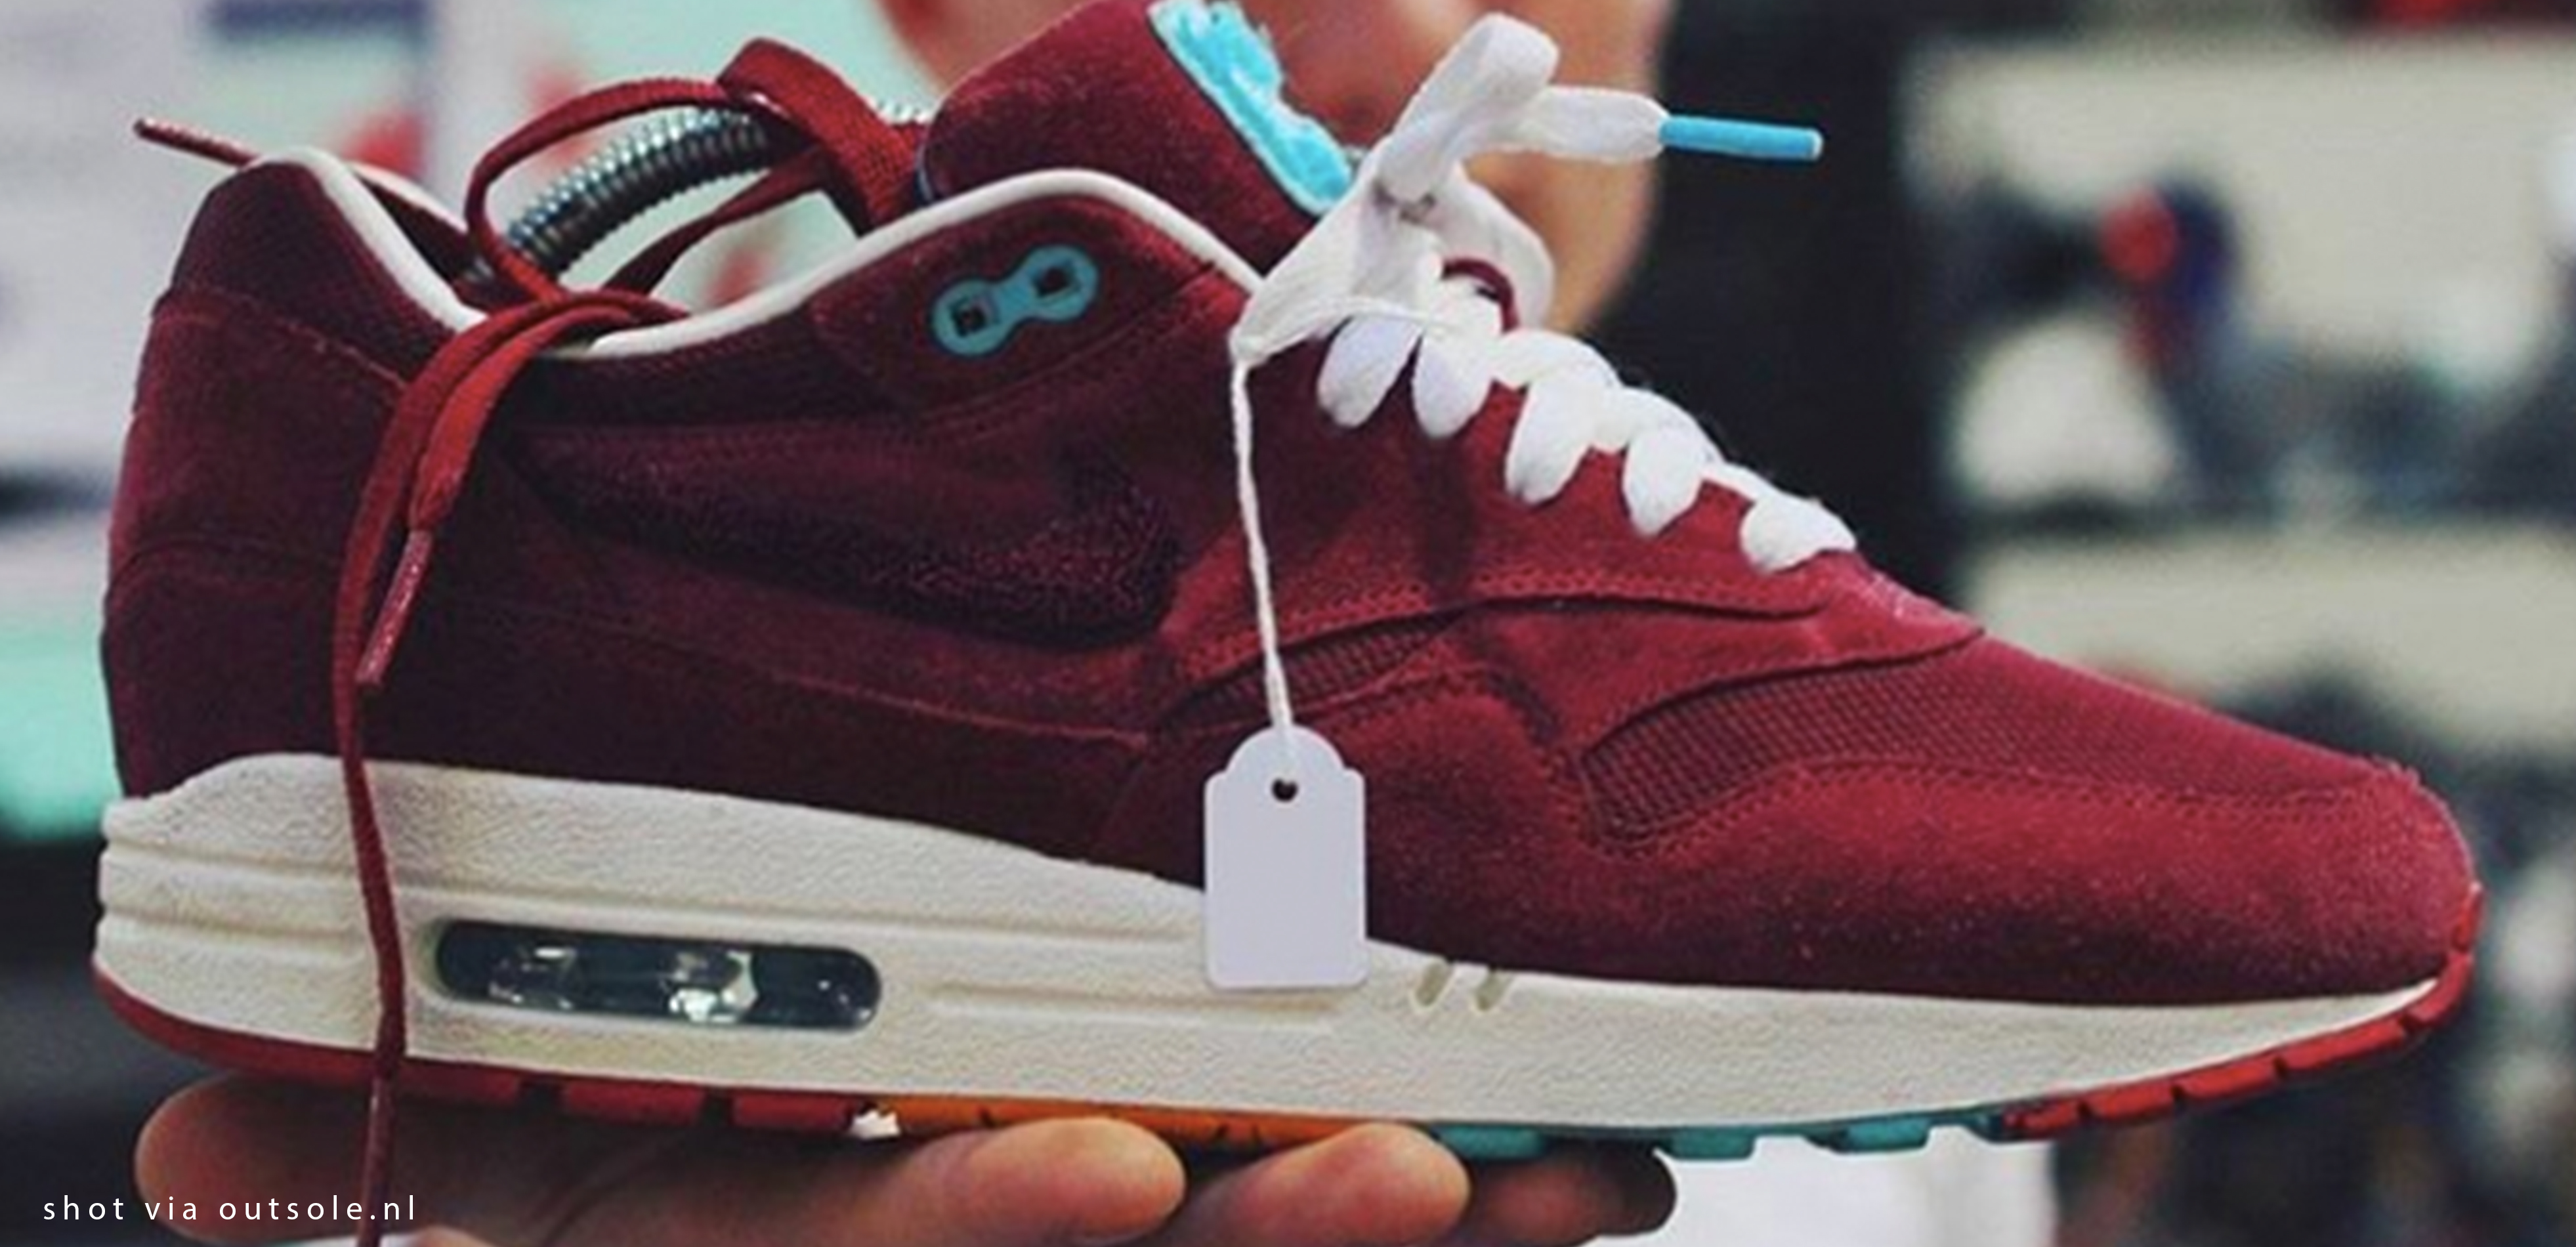 Double trouble | Nike Air Max 1 Patta Burgundy x Parra